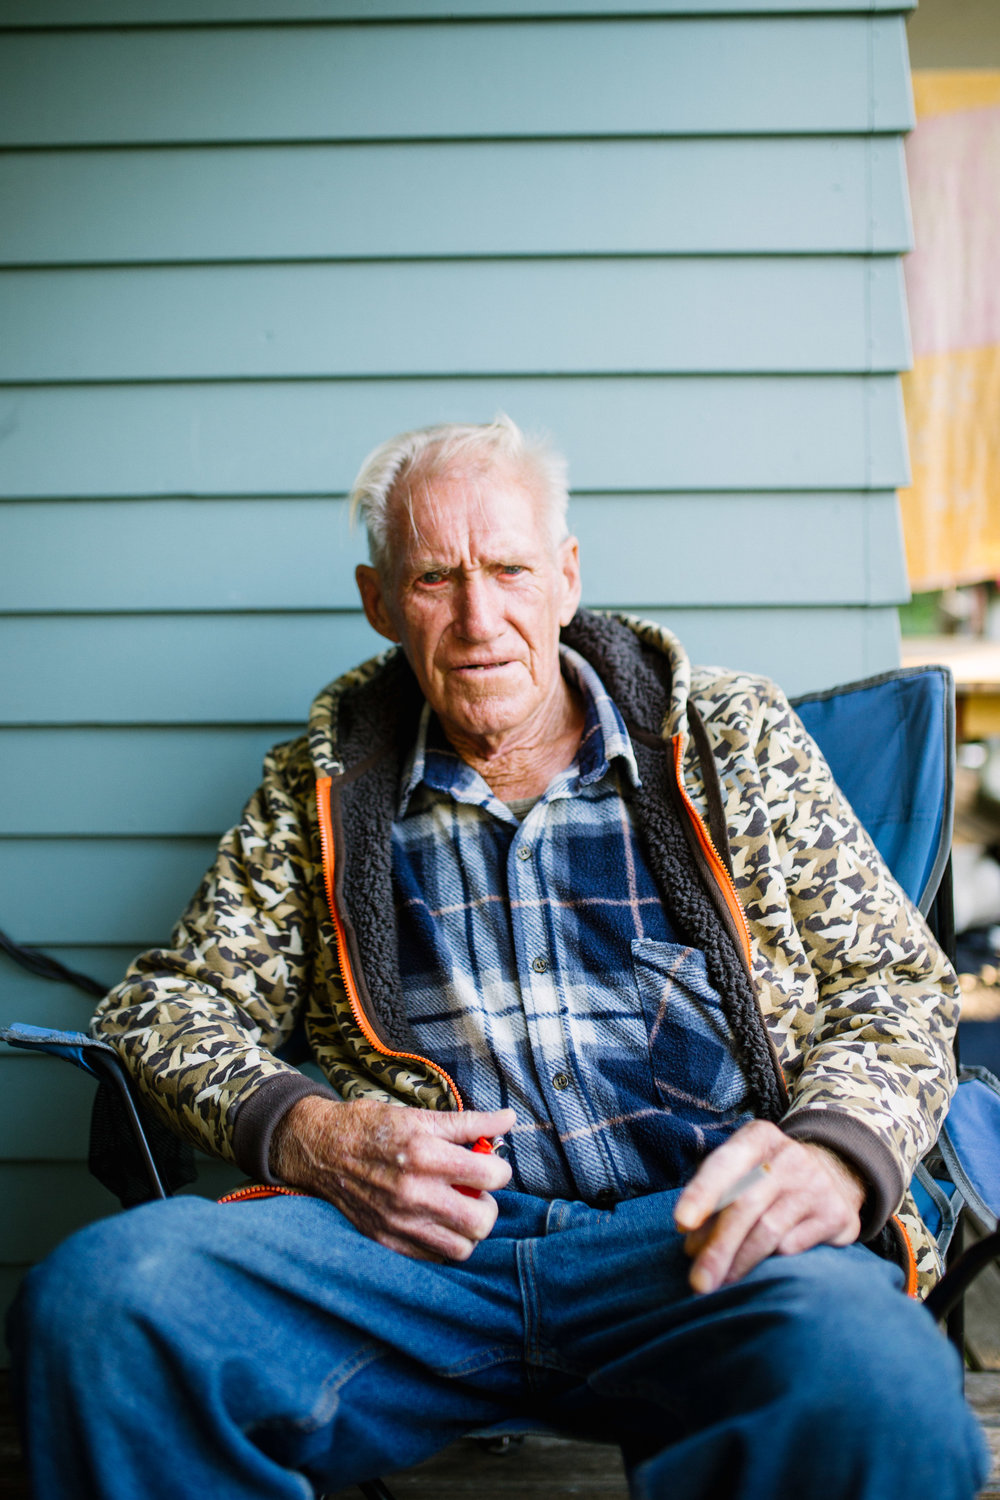 May 7 2017.  In Auckland, New Zealand, my Great Uncle Ken sat on the porch of my second cousin's home, about to light a cigarette. Only a short while after my visit, he passed away on November 29 2017. As one of the few siblings of my Nana that was alive, I feel privileged to have met him during my short time there and gain a sense of her in person.  Out of frame, my Uncle Murray and cousin Lynn sit talking about my father and sharing stories about times they had spent with him. My Great Uncle Ken sat for a portrait as he asked me about school.